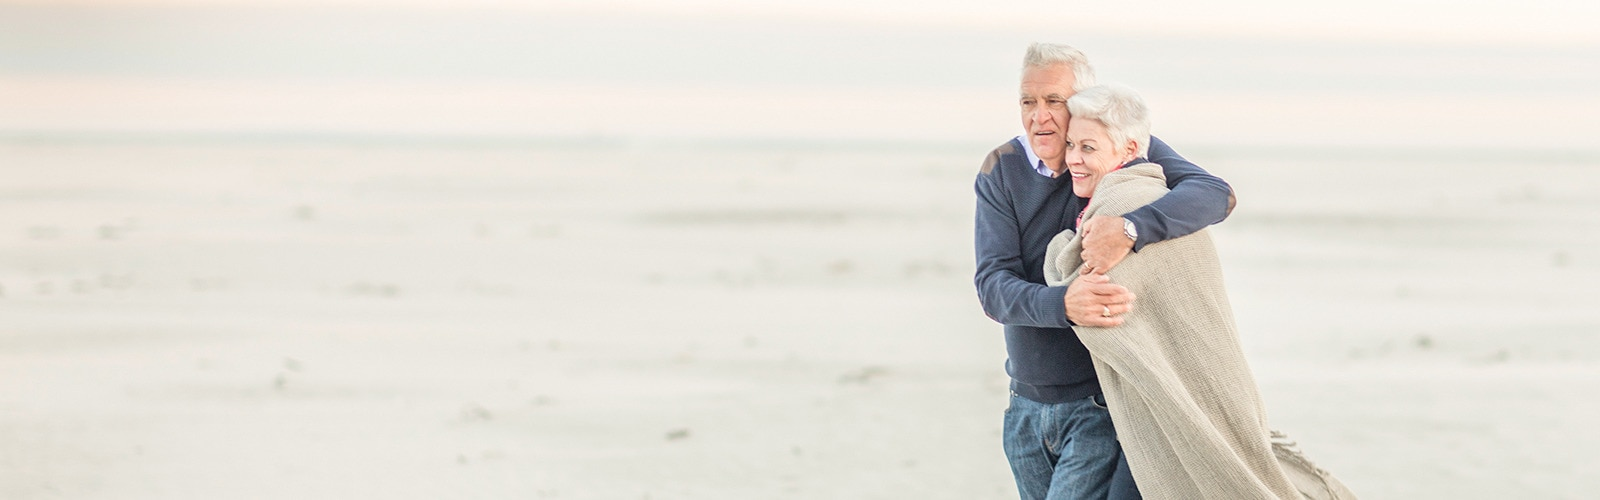 Elderly couple walking on the beach embracing